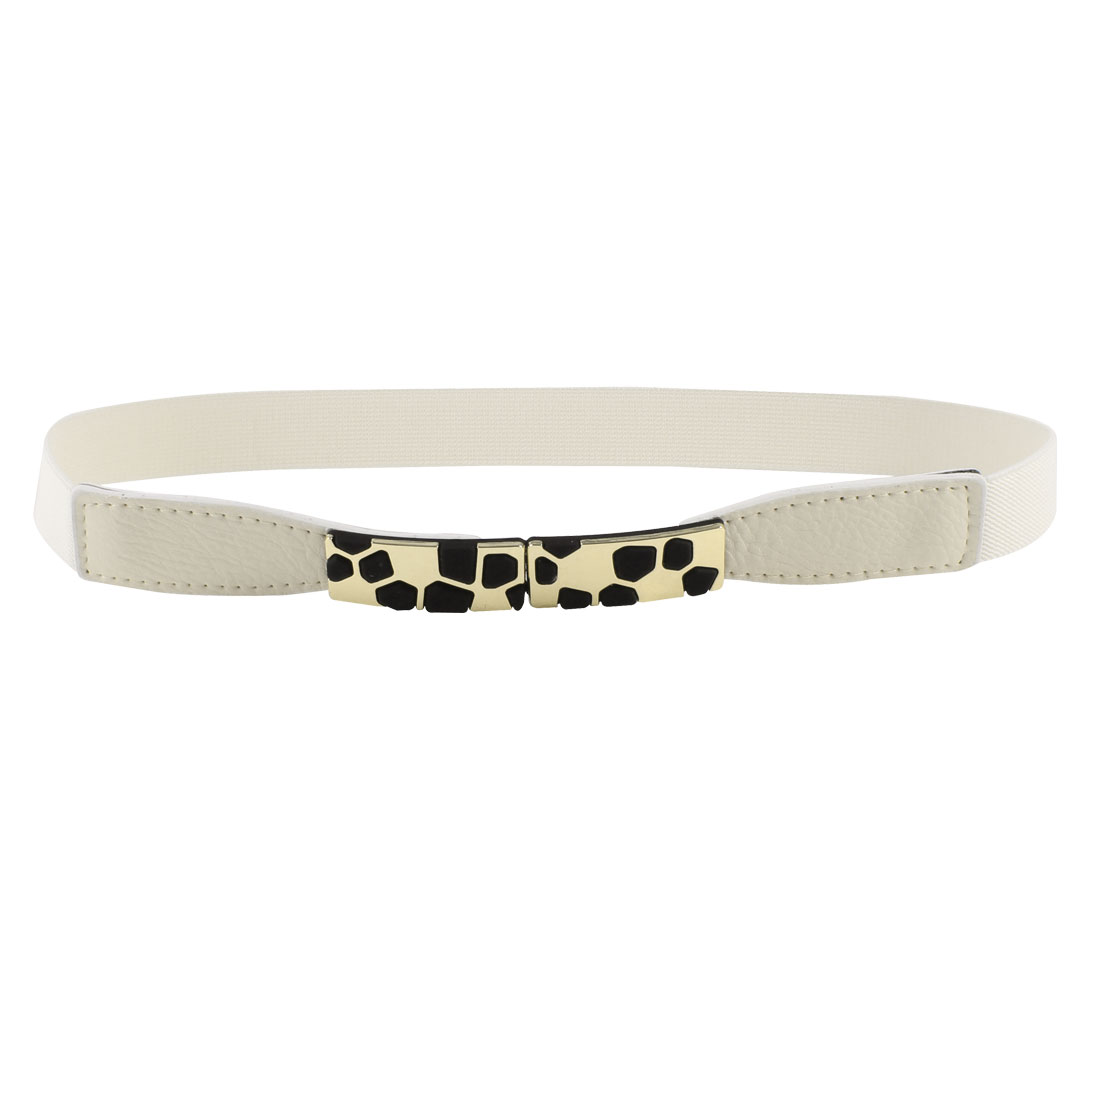 Block Design Metal Interlocking Buckle Stretchy Waist Belt Off White for Ladies